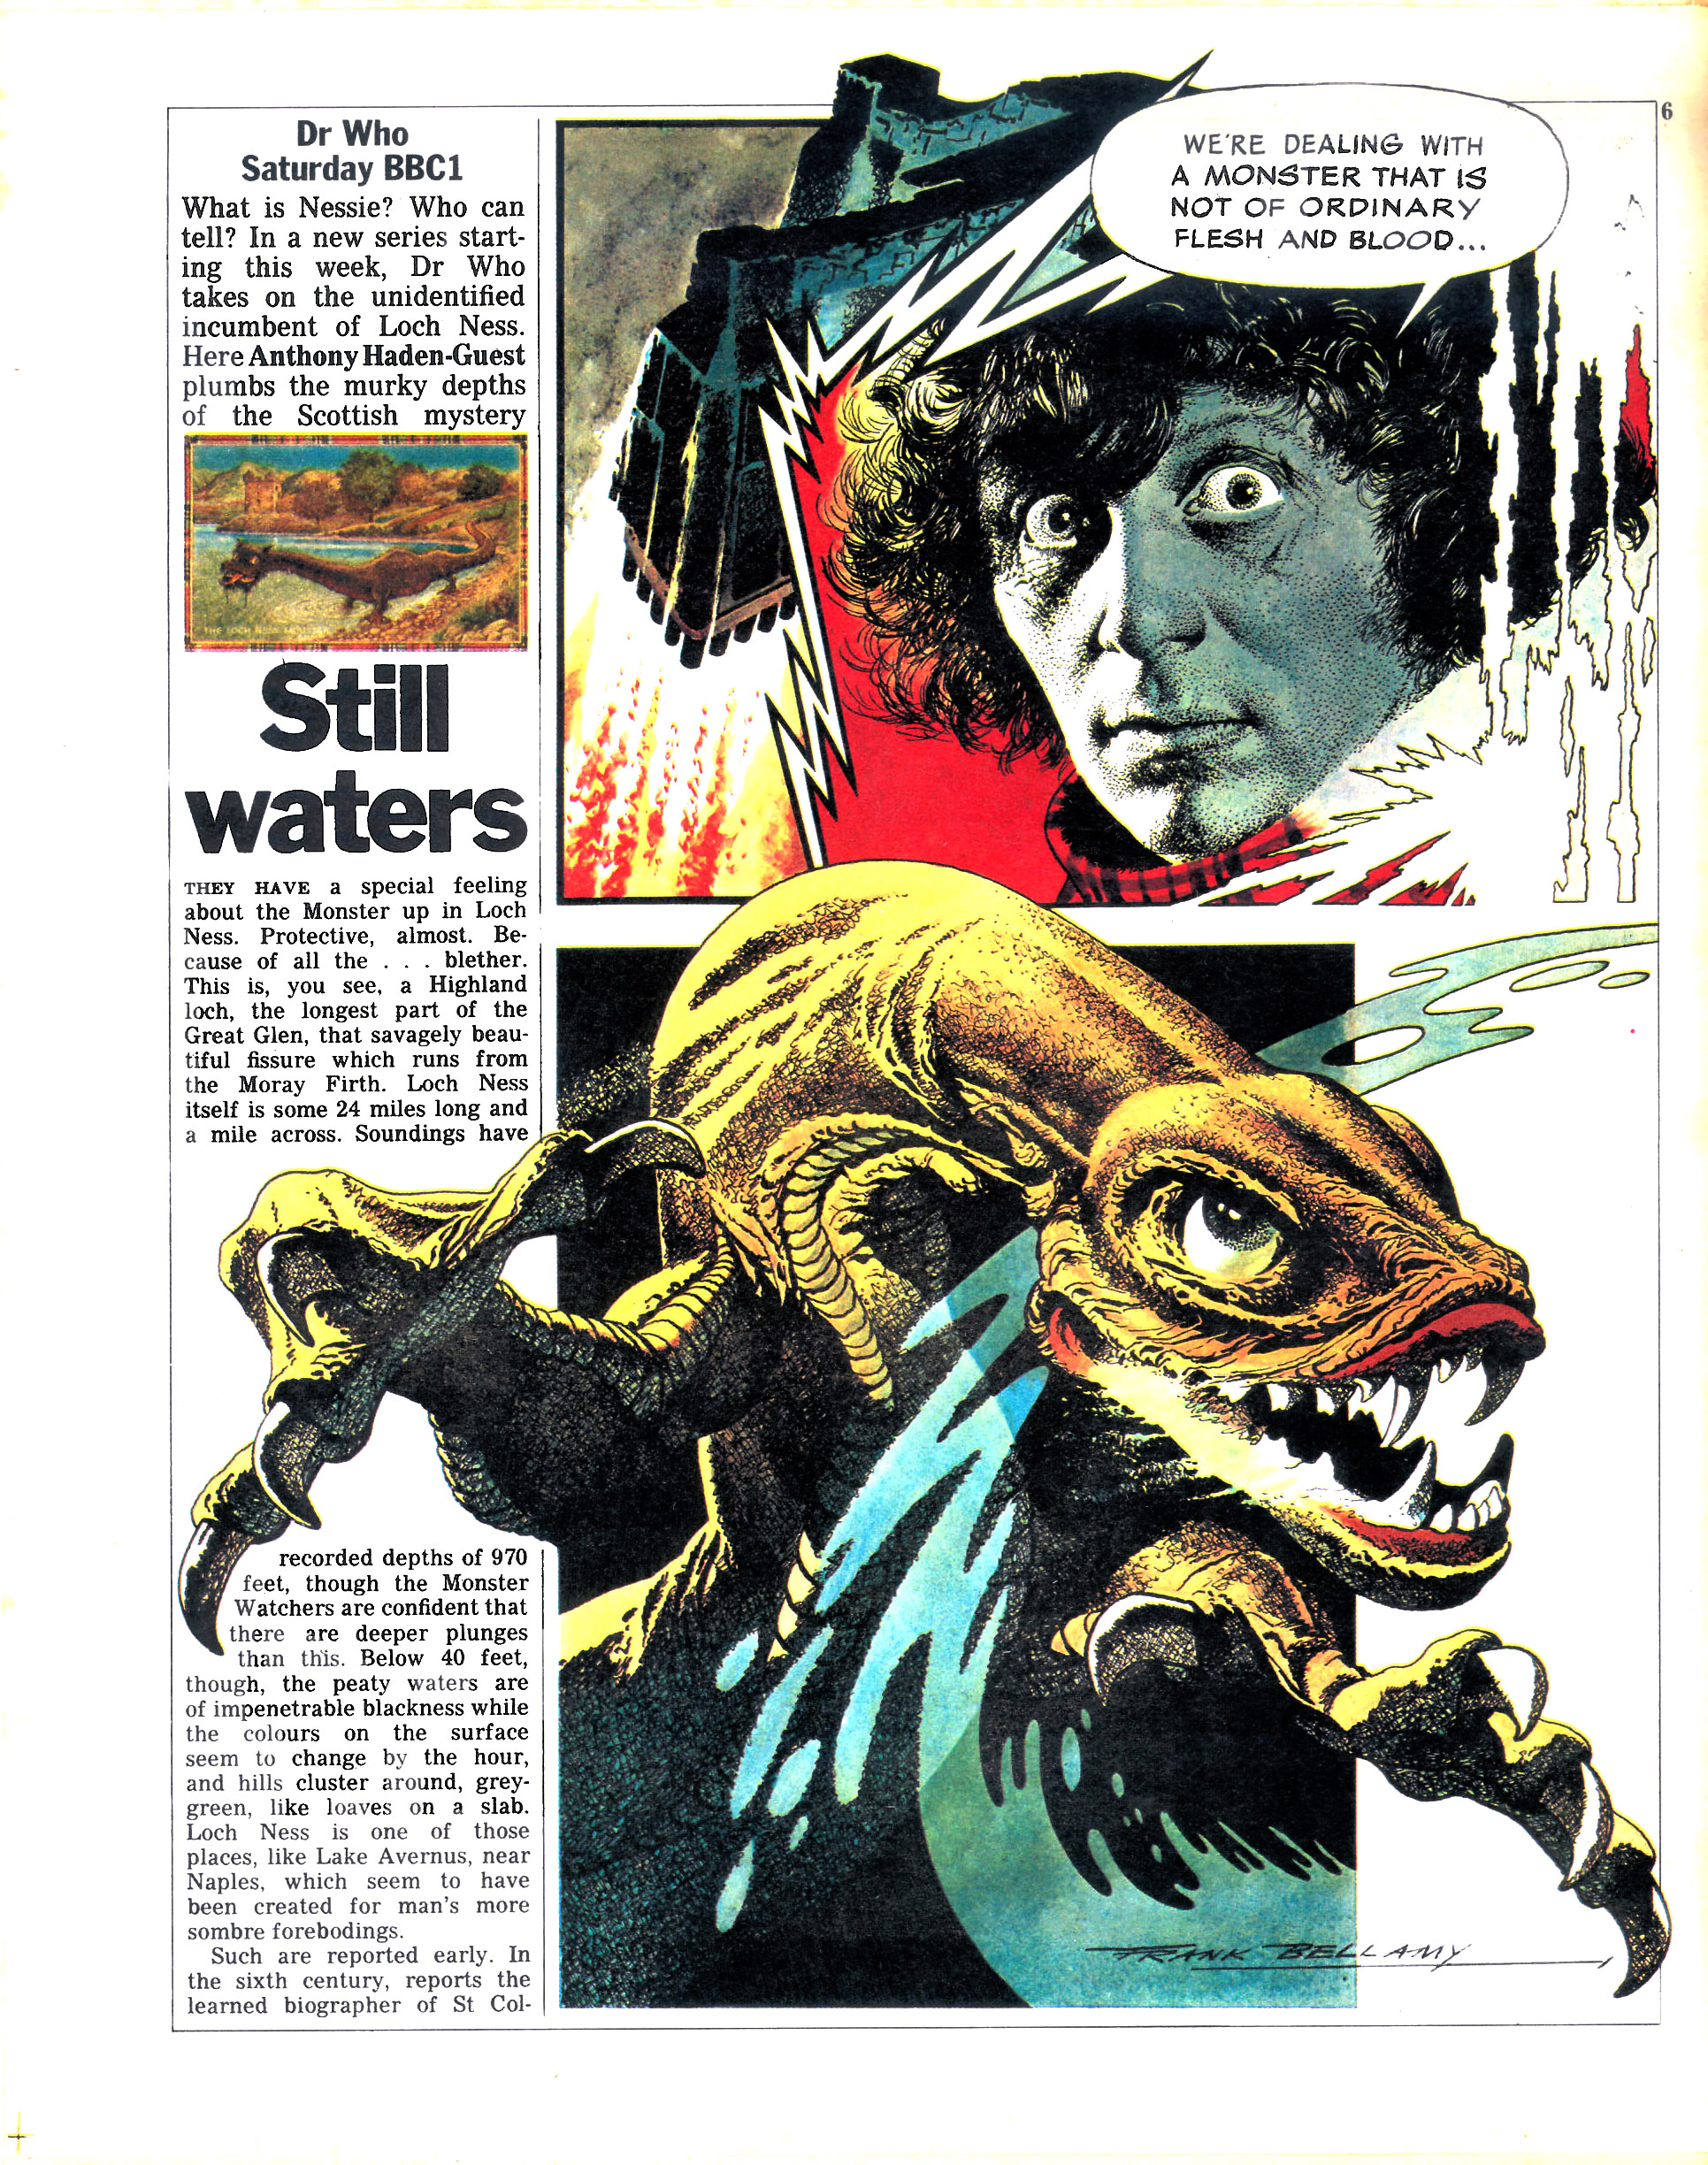 Still waters, page 1 (Credit: Radio Times / Frank Bellamy)